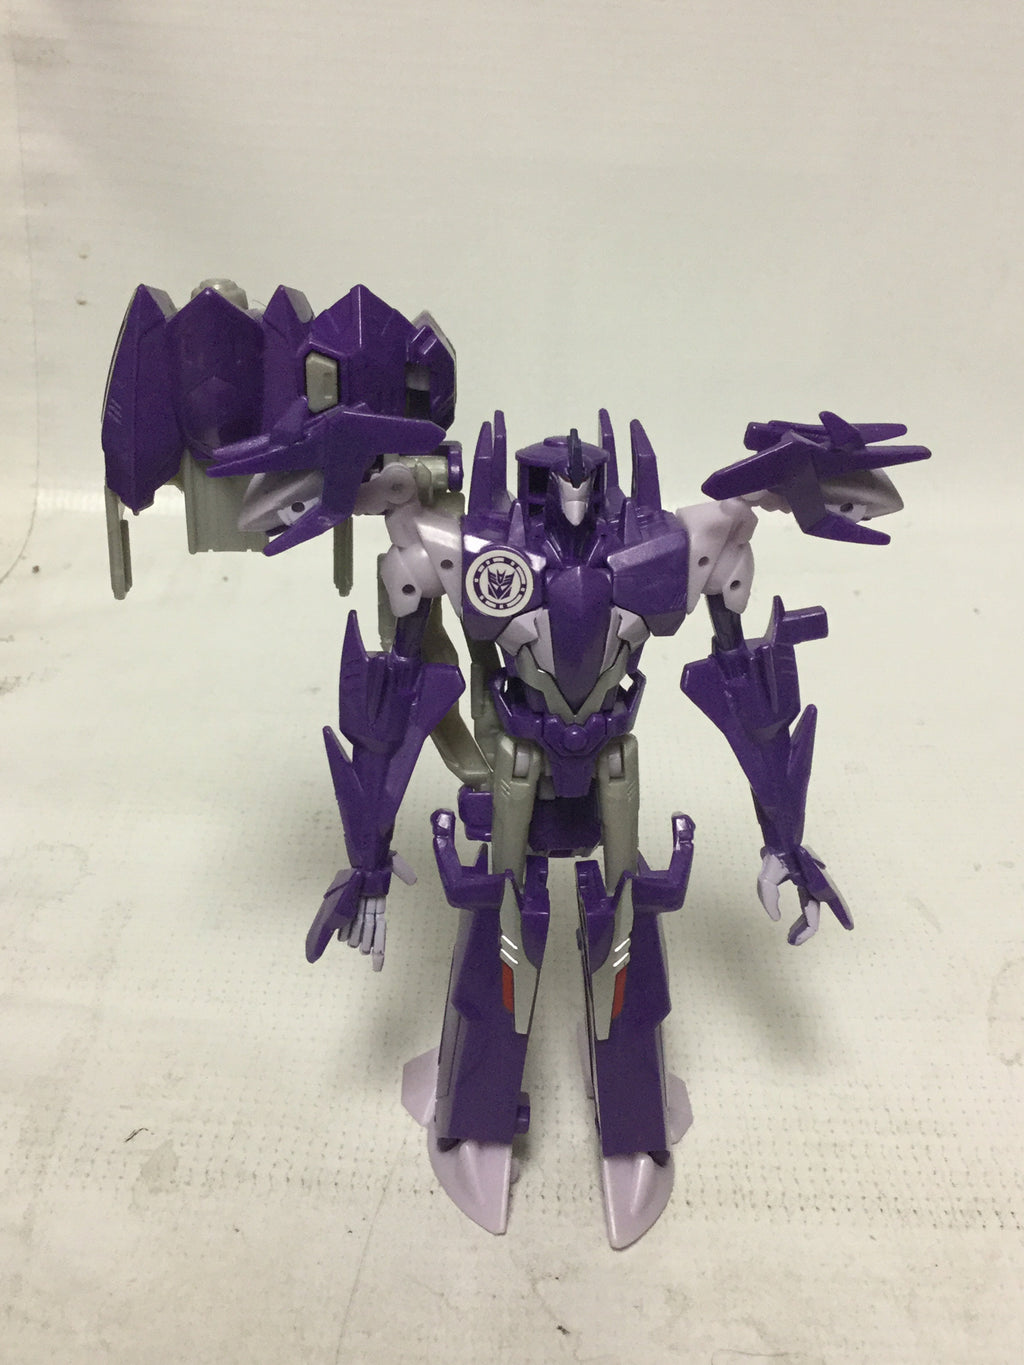 Hasbro Transformers Robots In Disguise Deployers Fracture